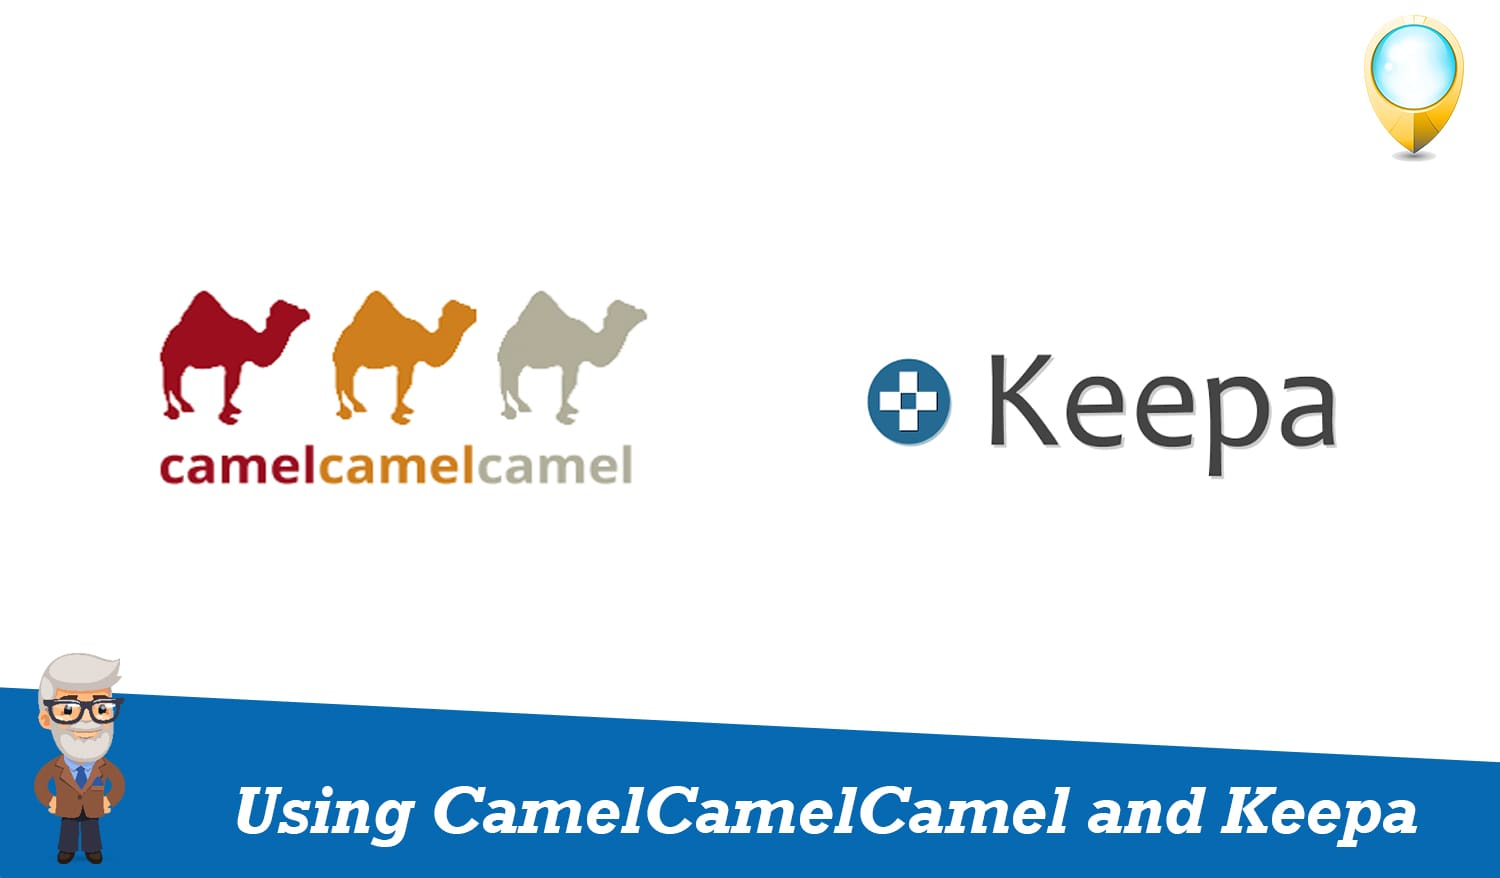 Using CamelCamelCamel and Keepa for Selling on Amazon FBA